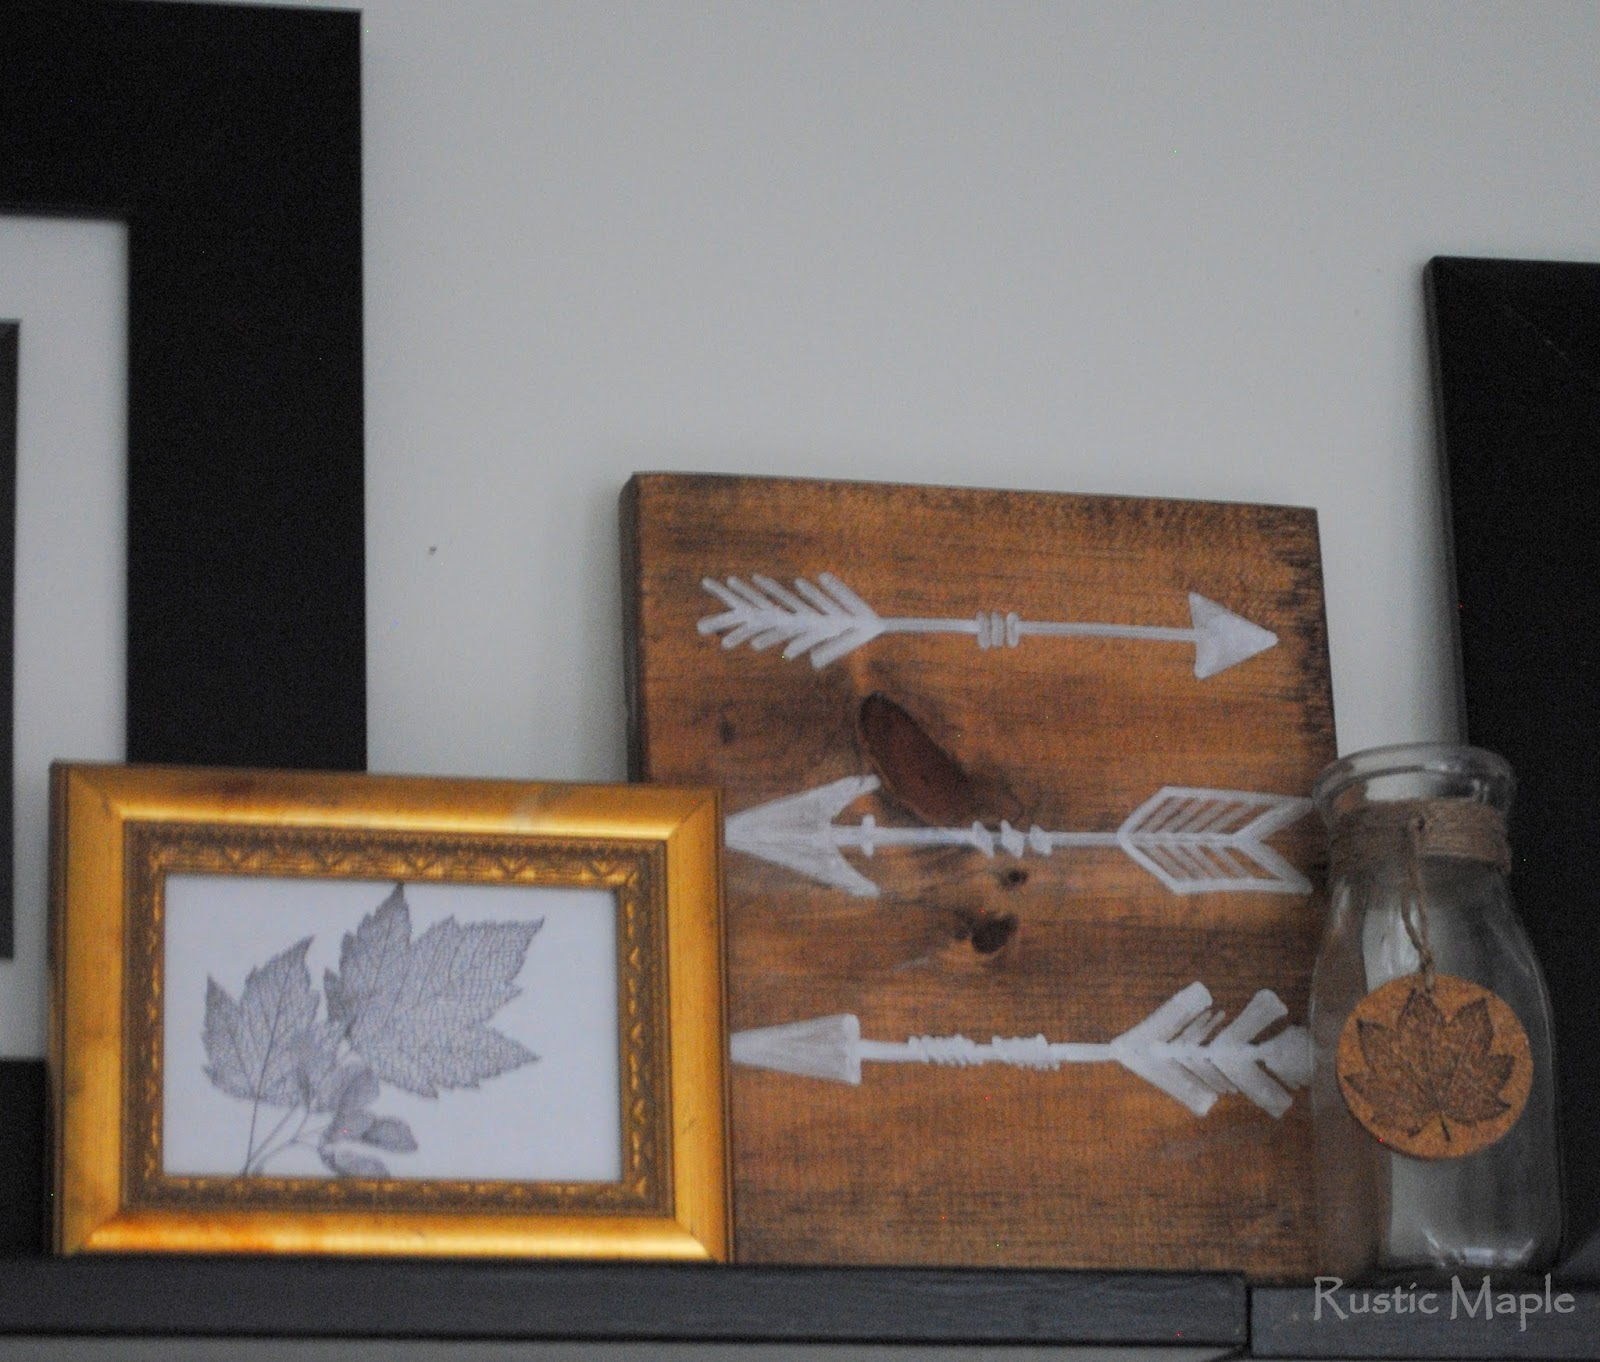 Rustic maple family room gallery wall with picture ledges for one frame i printed out a free maple leaves graphic jeuxipadfo Image collections